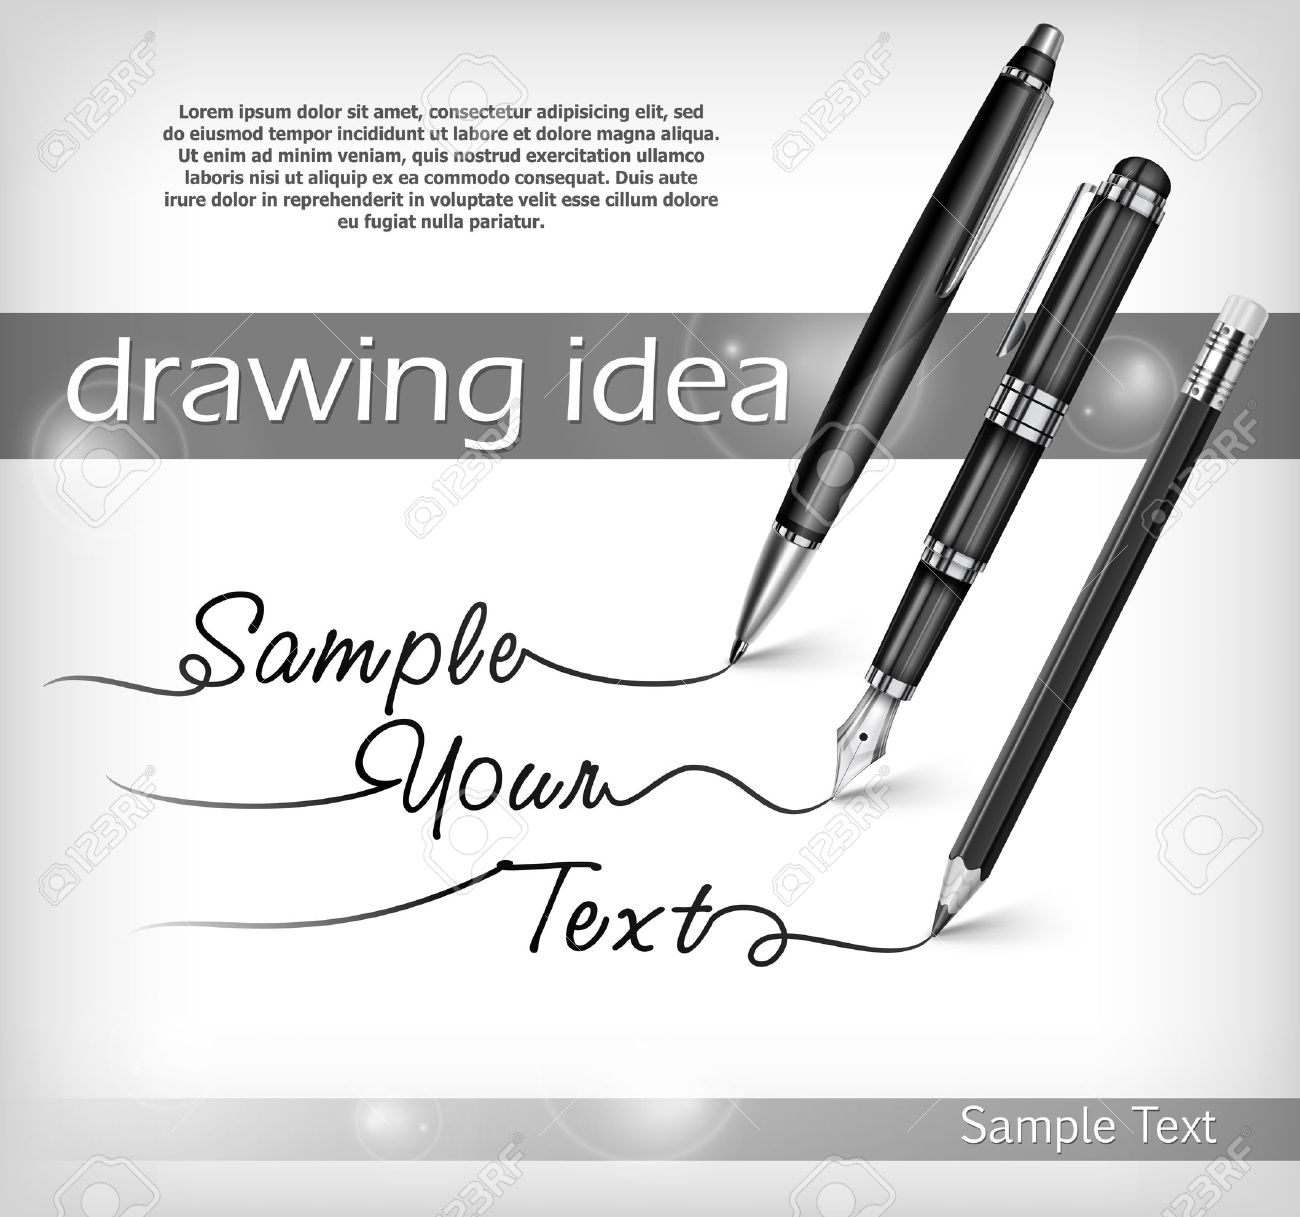 Ball pen, pencil, fountain pen signs and text, vector illustration Stock Vector - 18376401